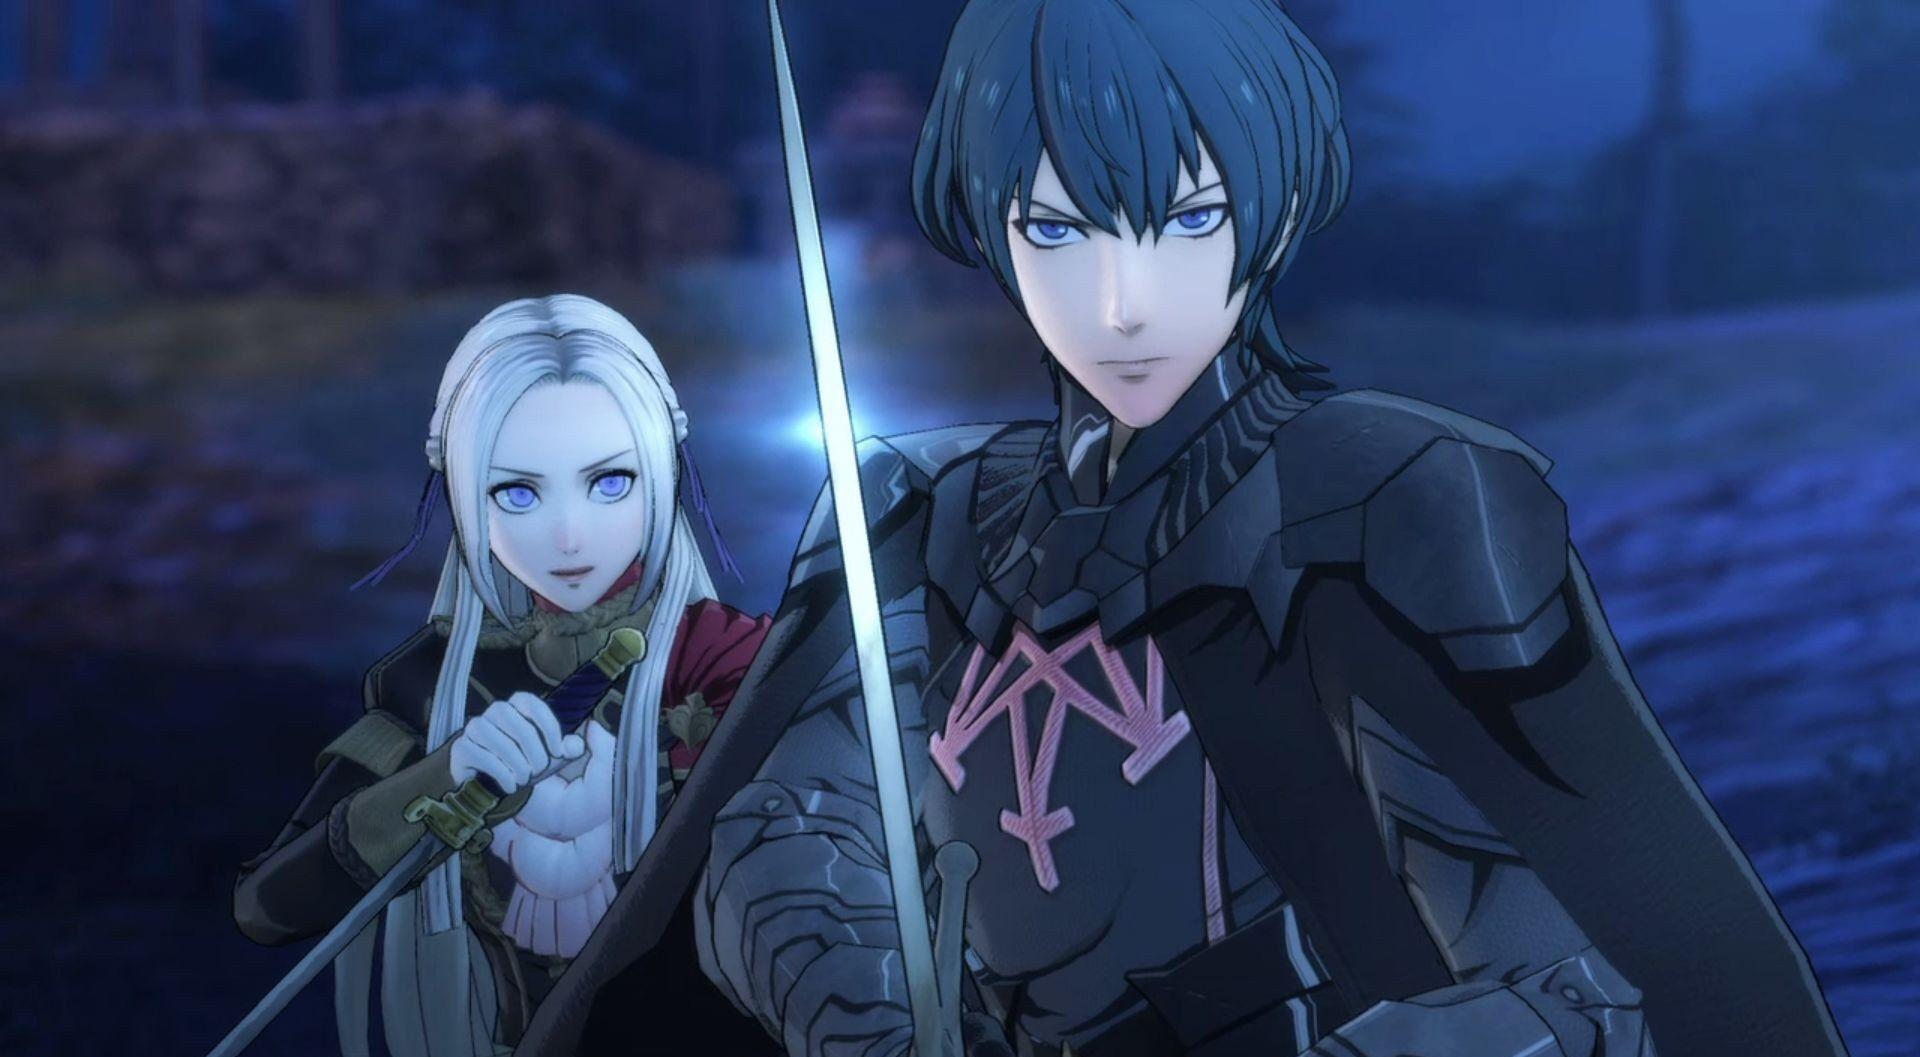 Fire Emblem Three Houses: 5 game suggestions to play after completion